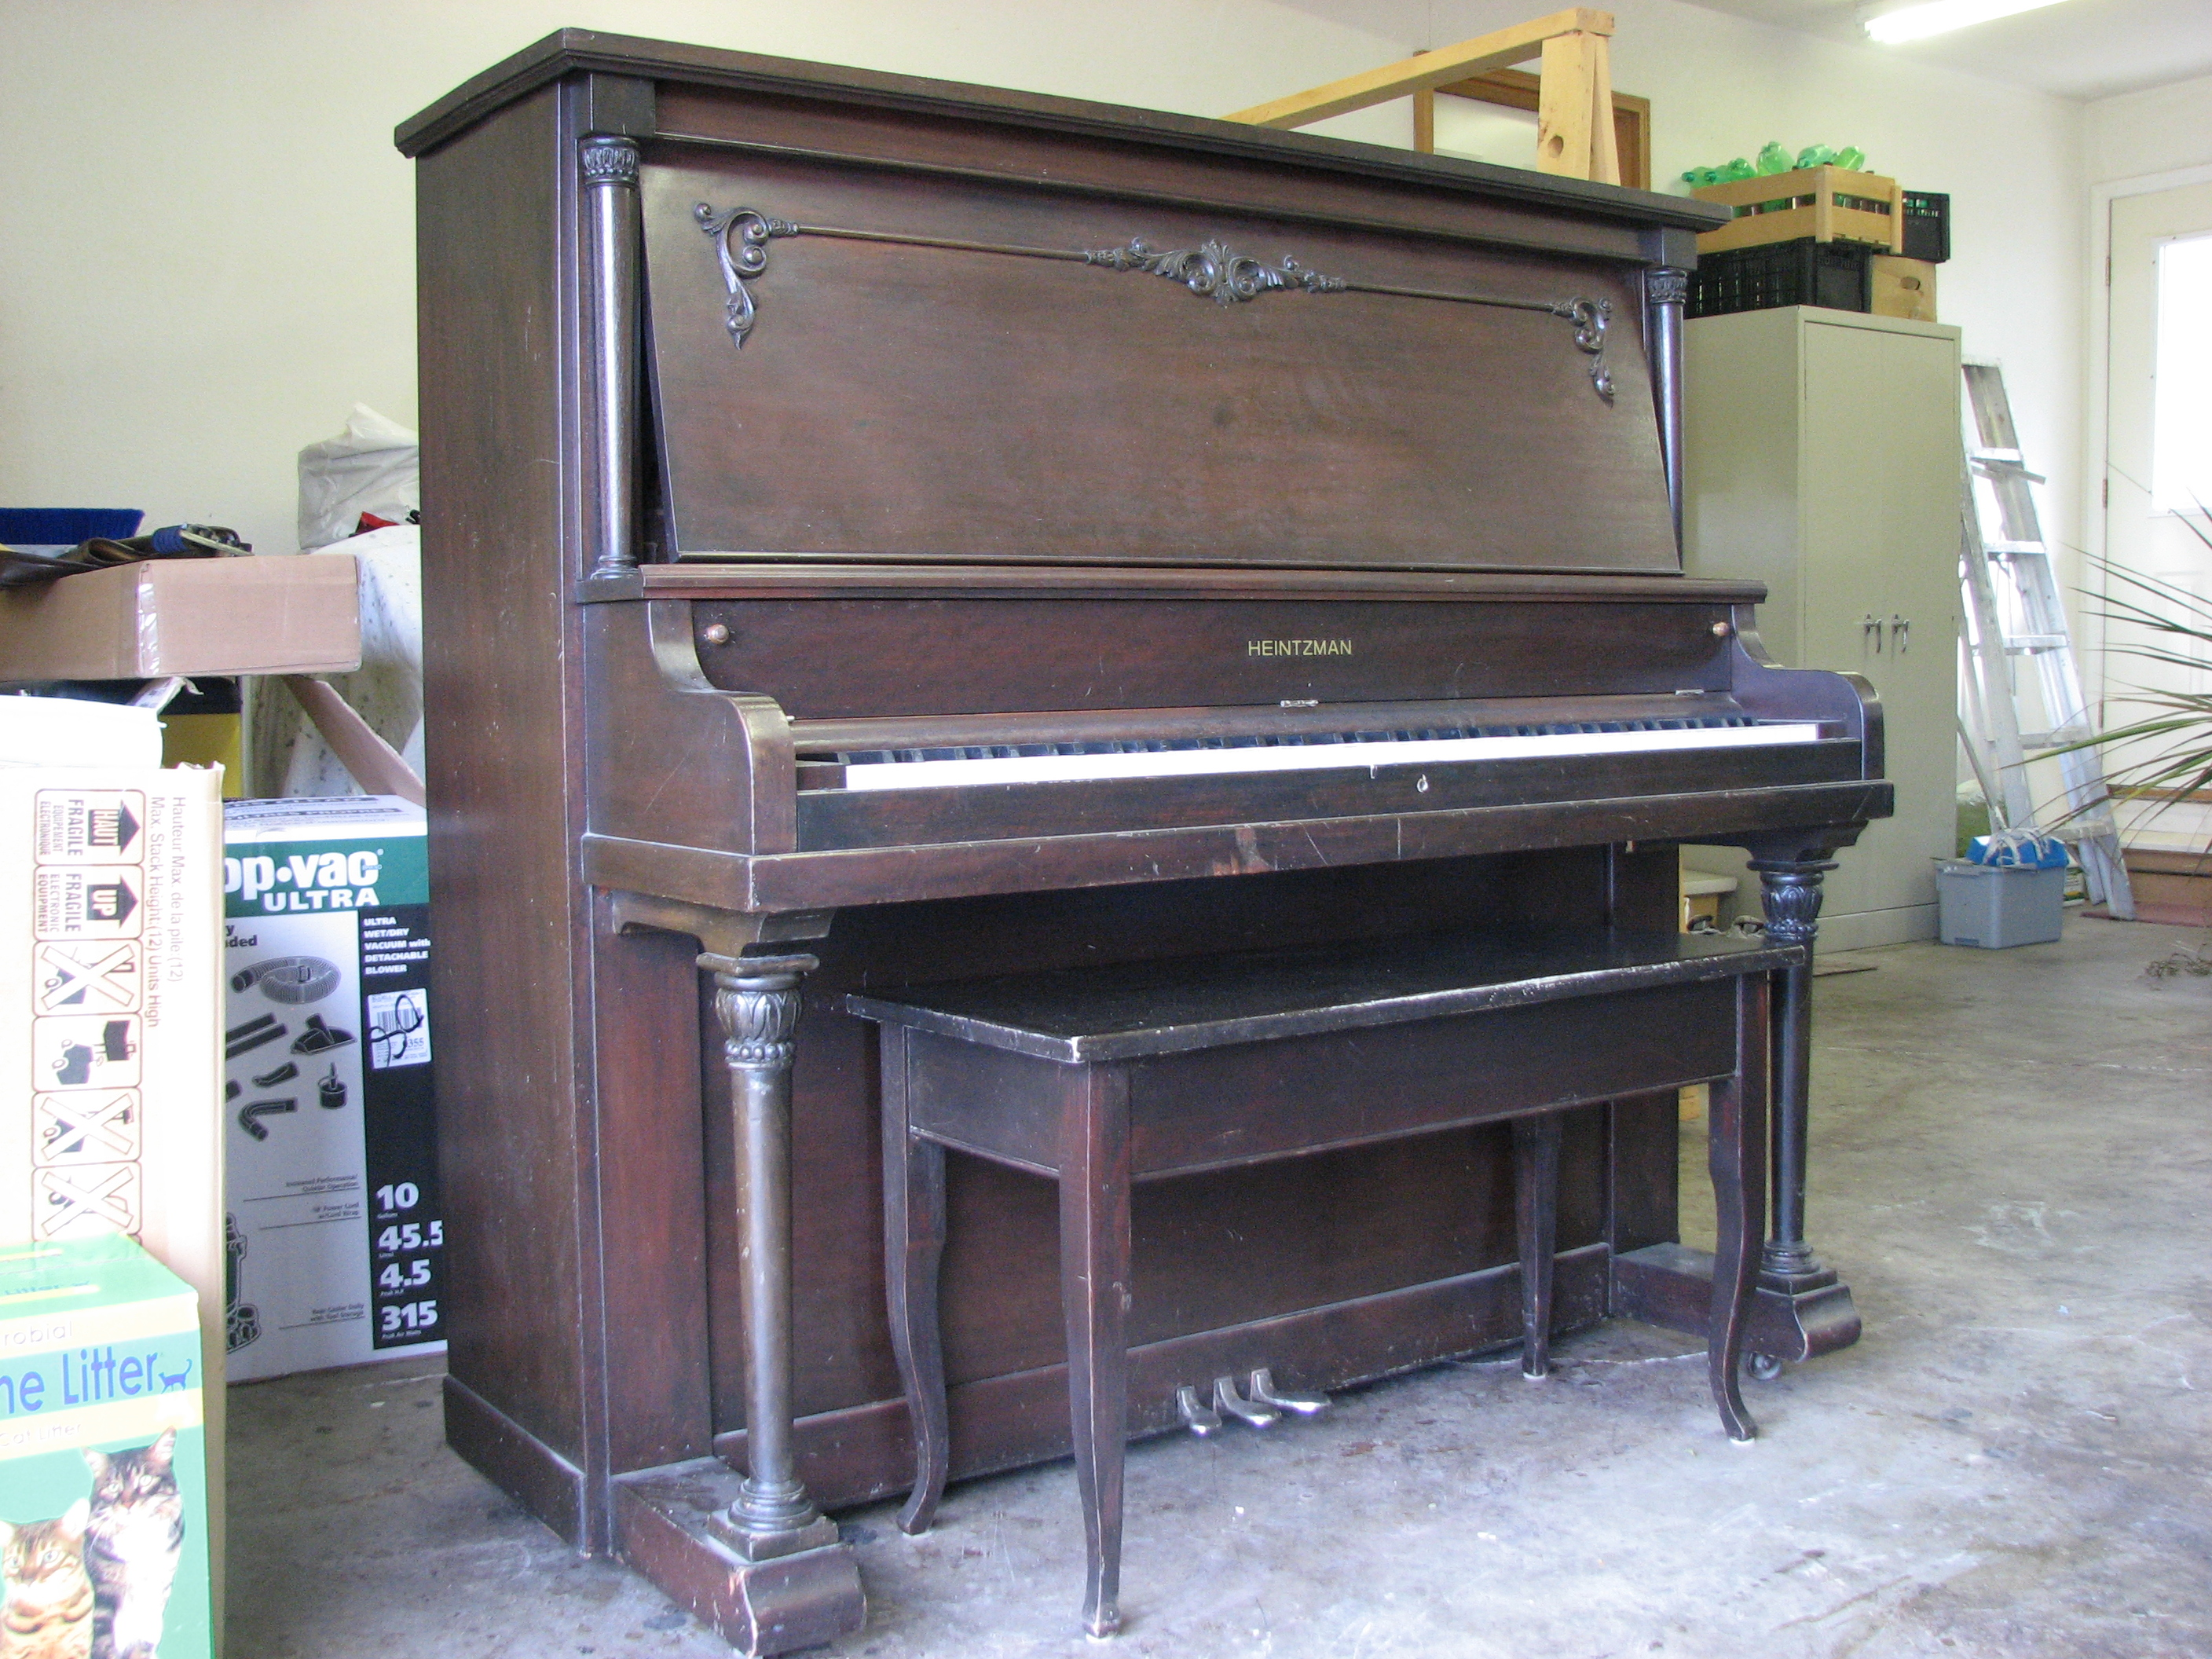 Heintzman before restoration